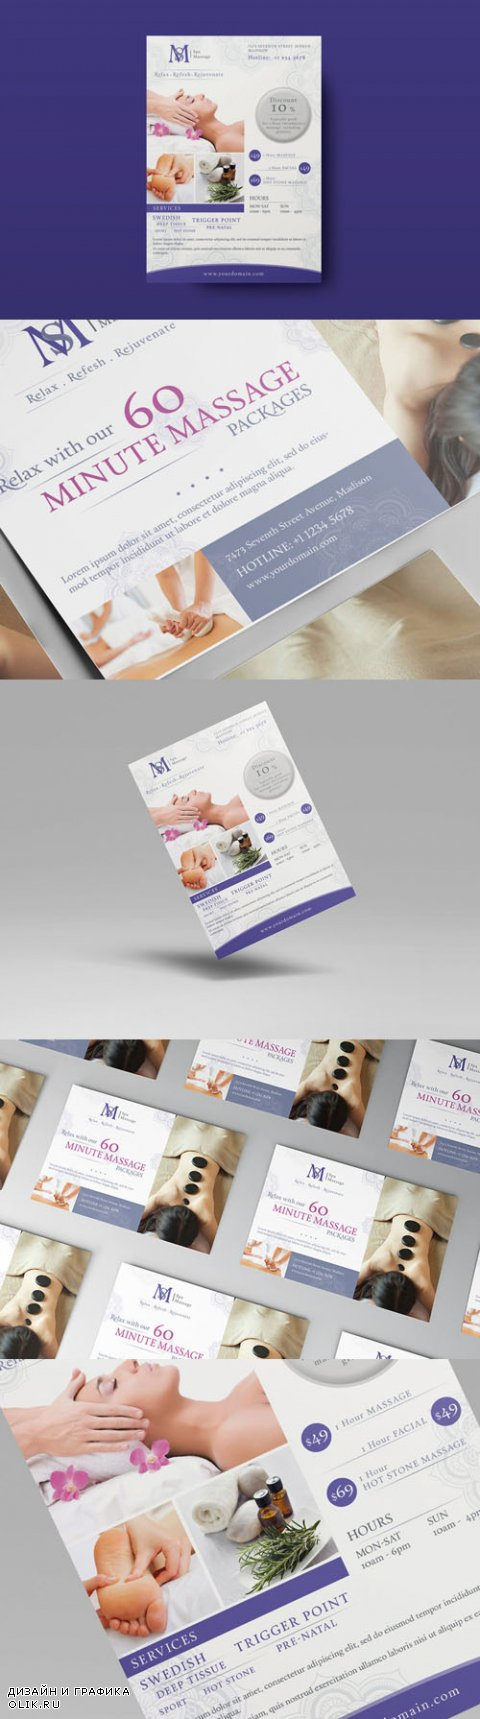 PSD Massage - Ad & Flyer Template